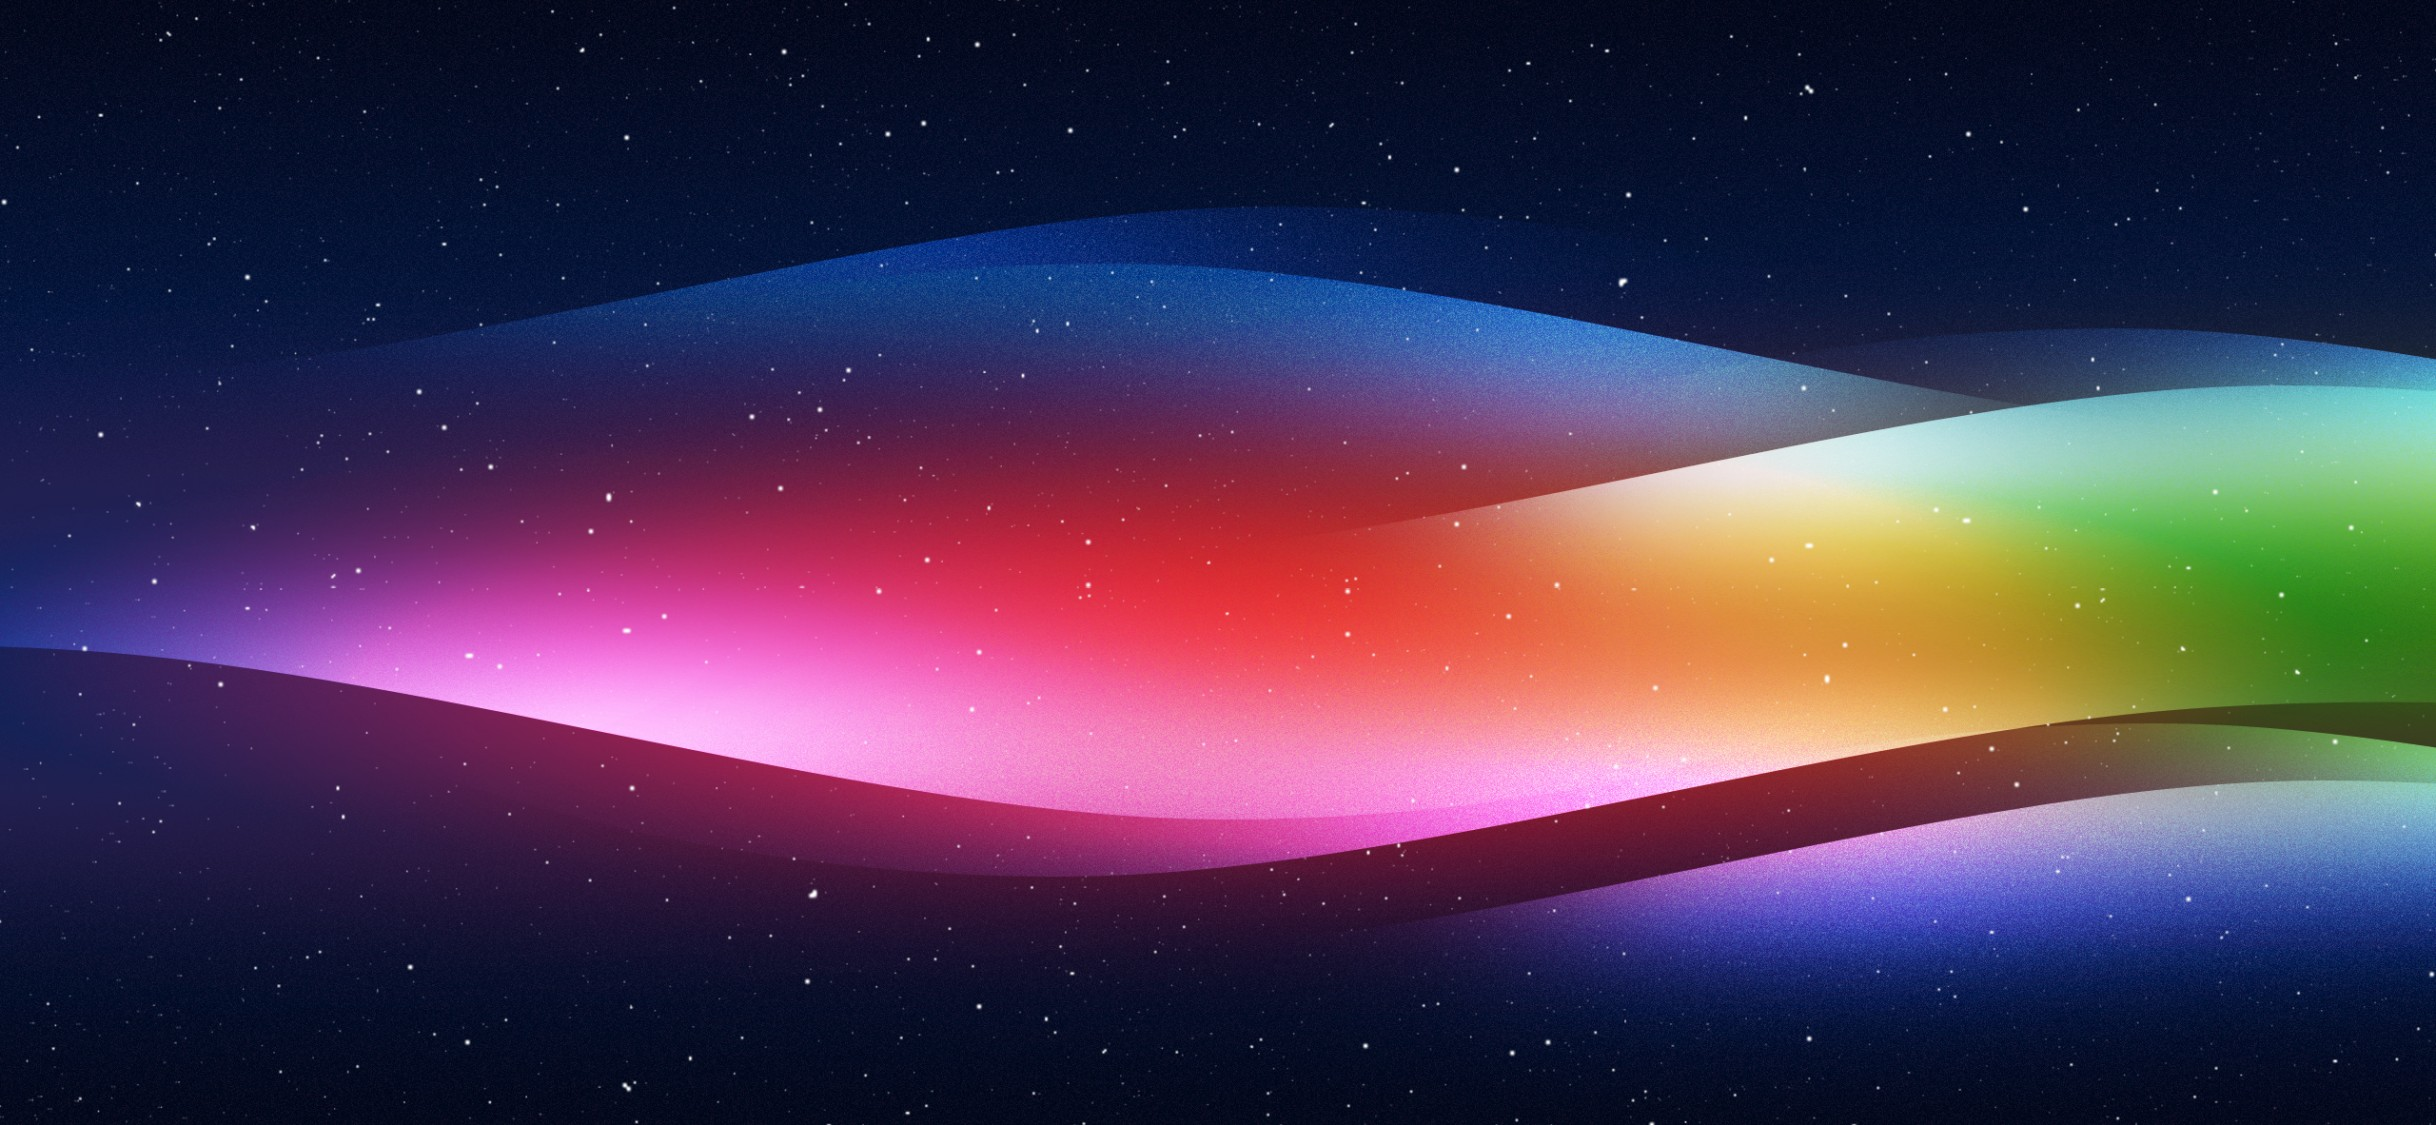 Colourful Spectrum 4K HD Wallpaper IPhone X